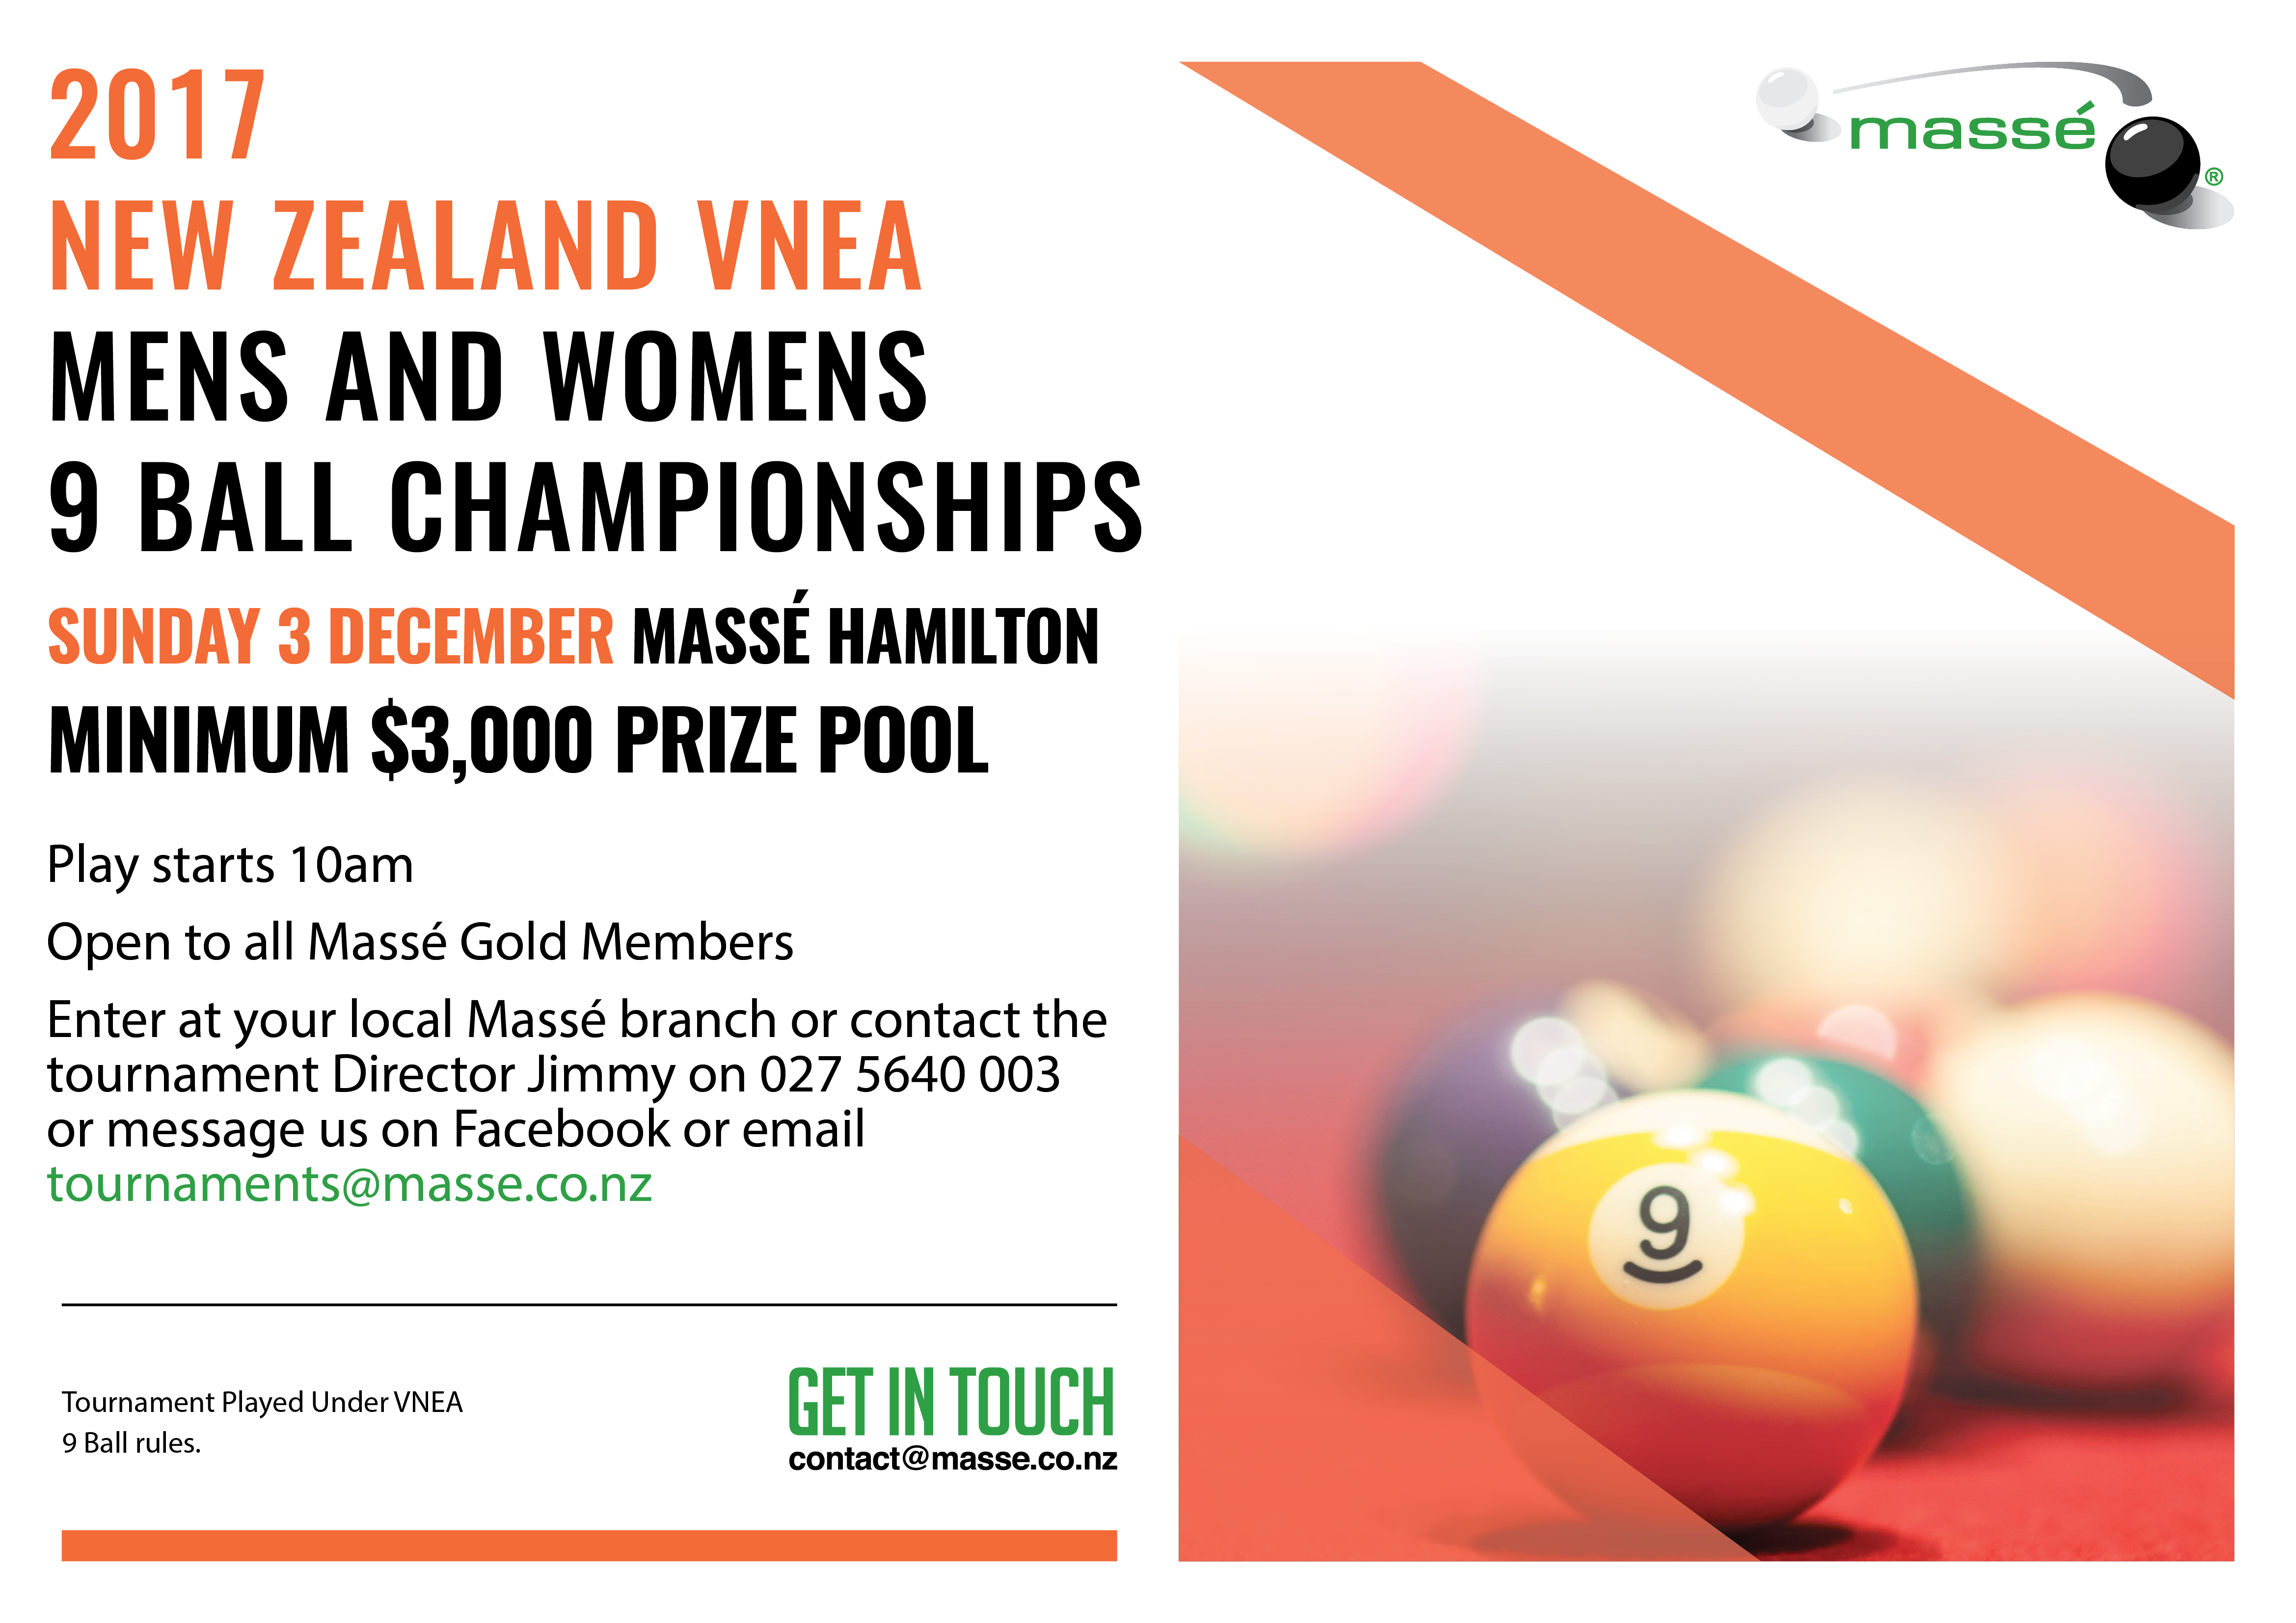 New Zealand VNEA 9 Ball Championships Mens & Womens 2017